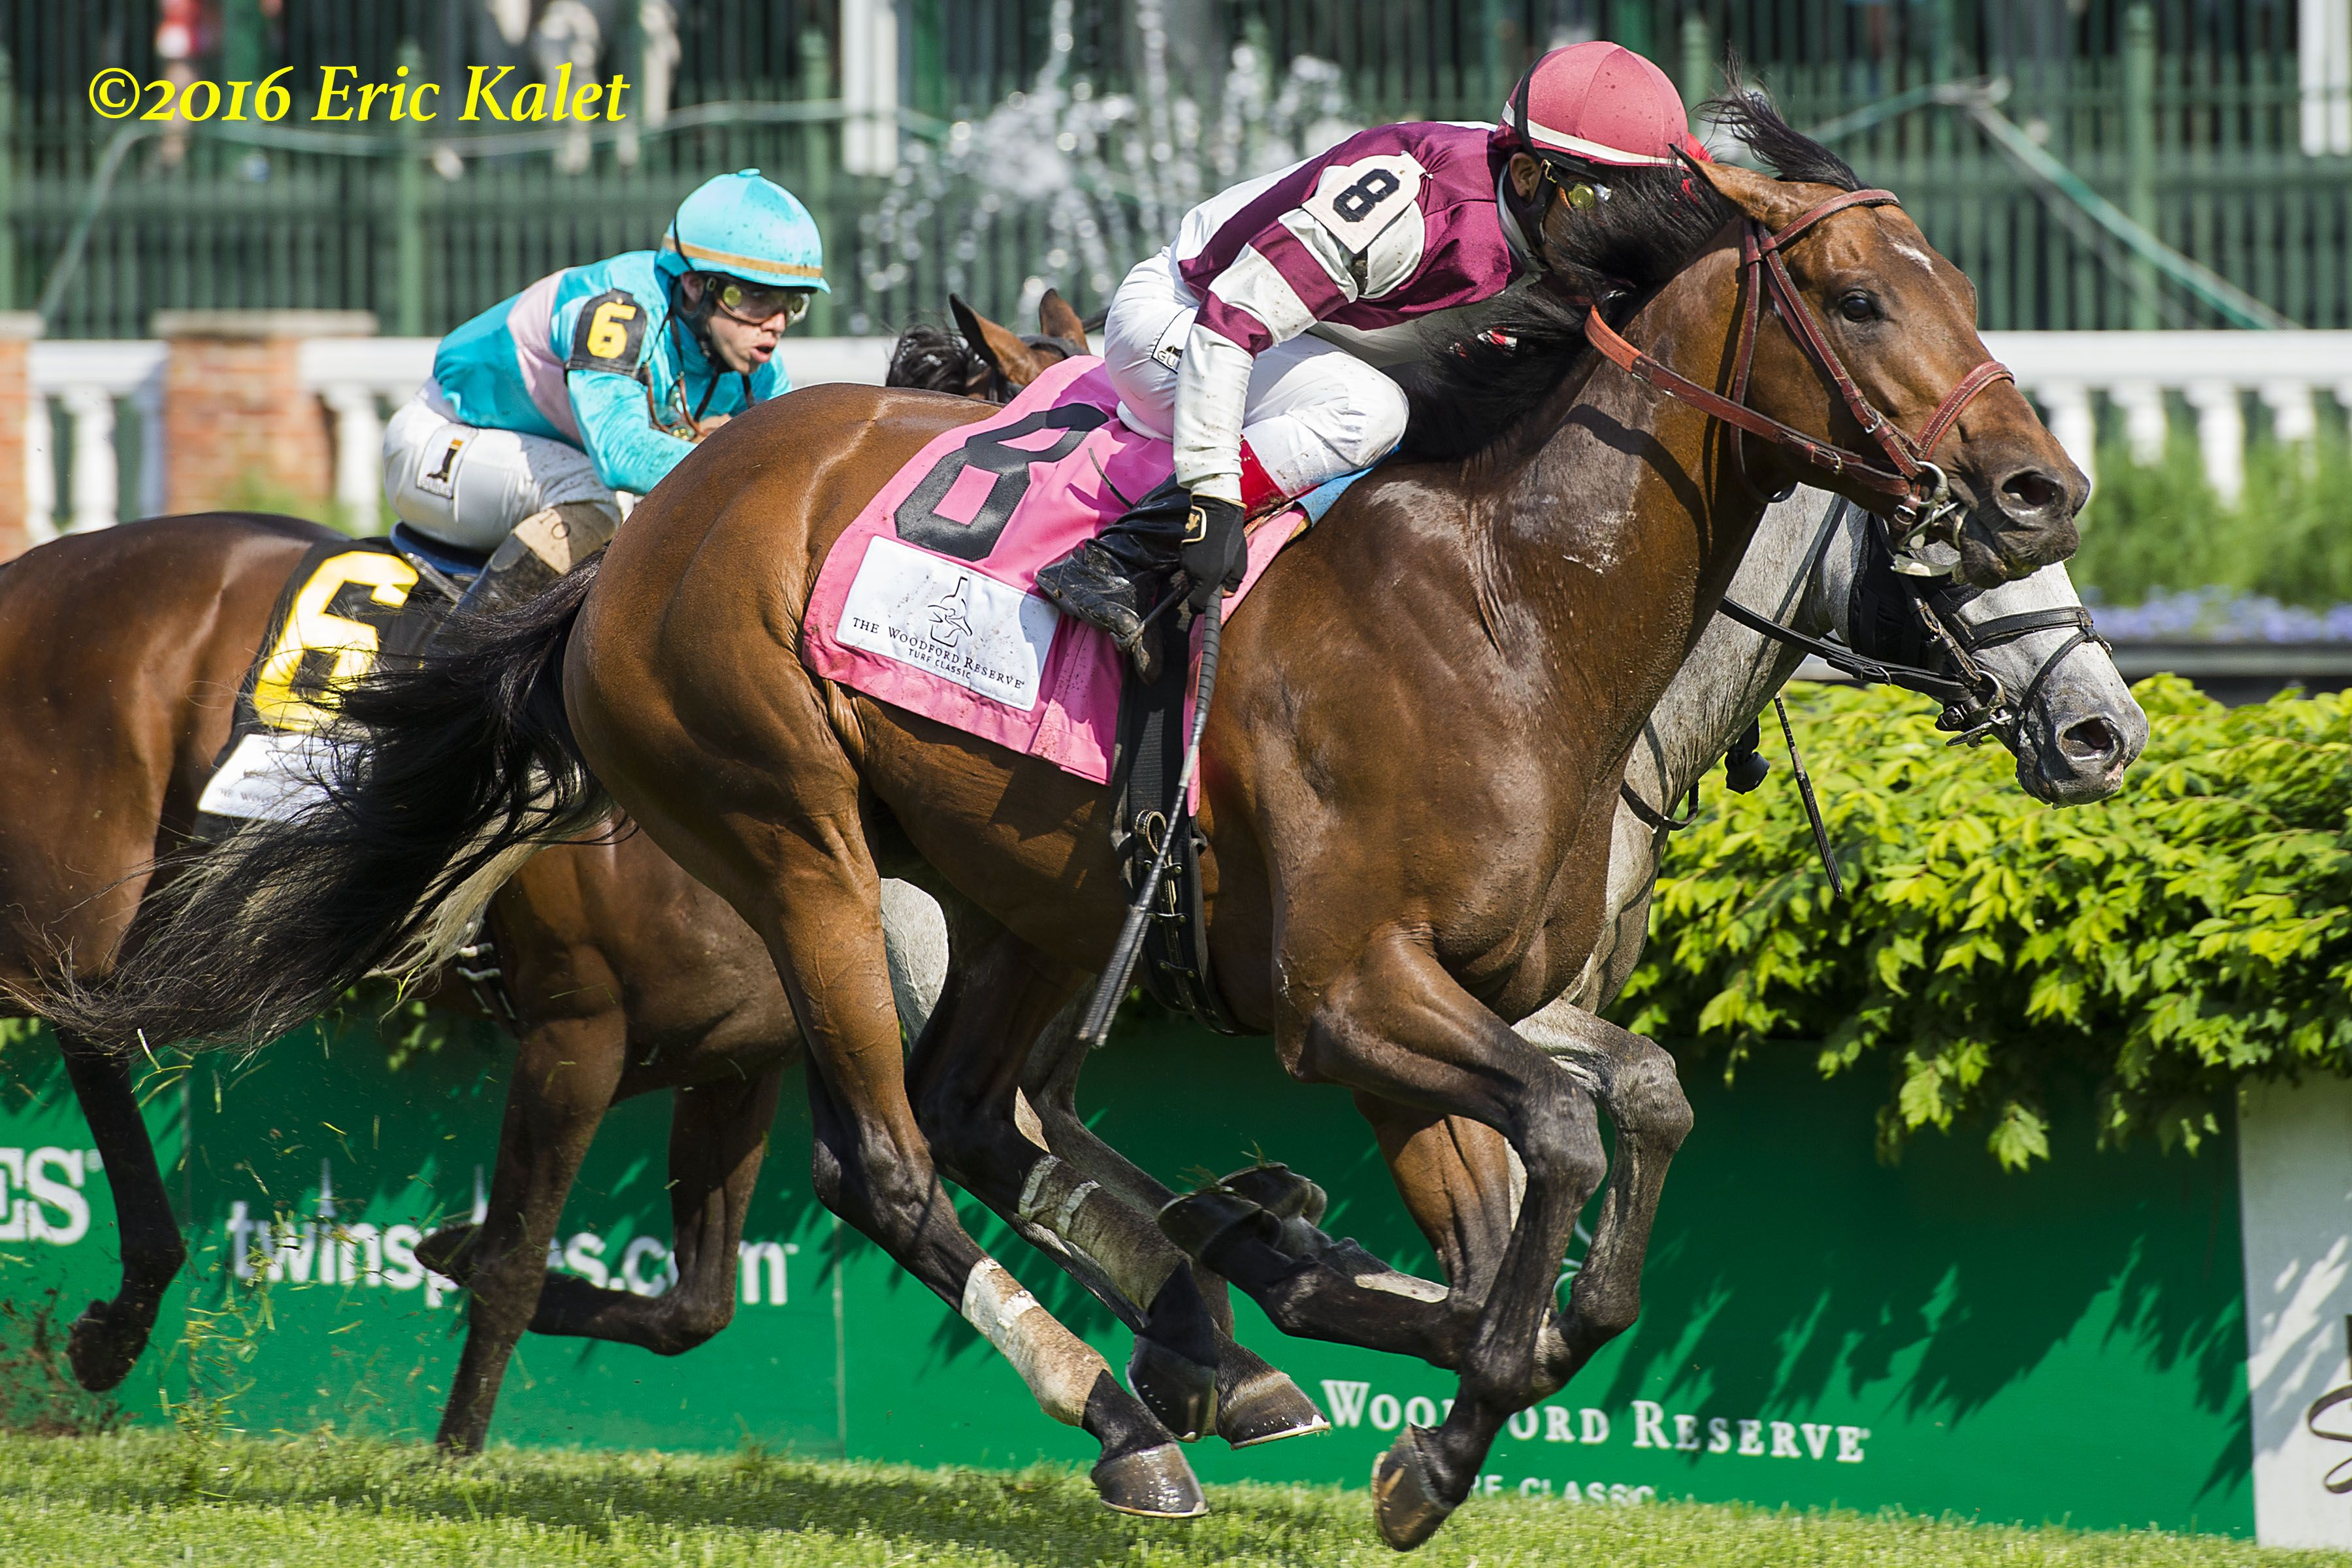 Divisidero Gets His First Gr1 Win In The Woodford Reserve Turf Classic Photo Courtesy Of Eric Kalet And The Paulick Report Www Paulickreport Com